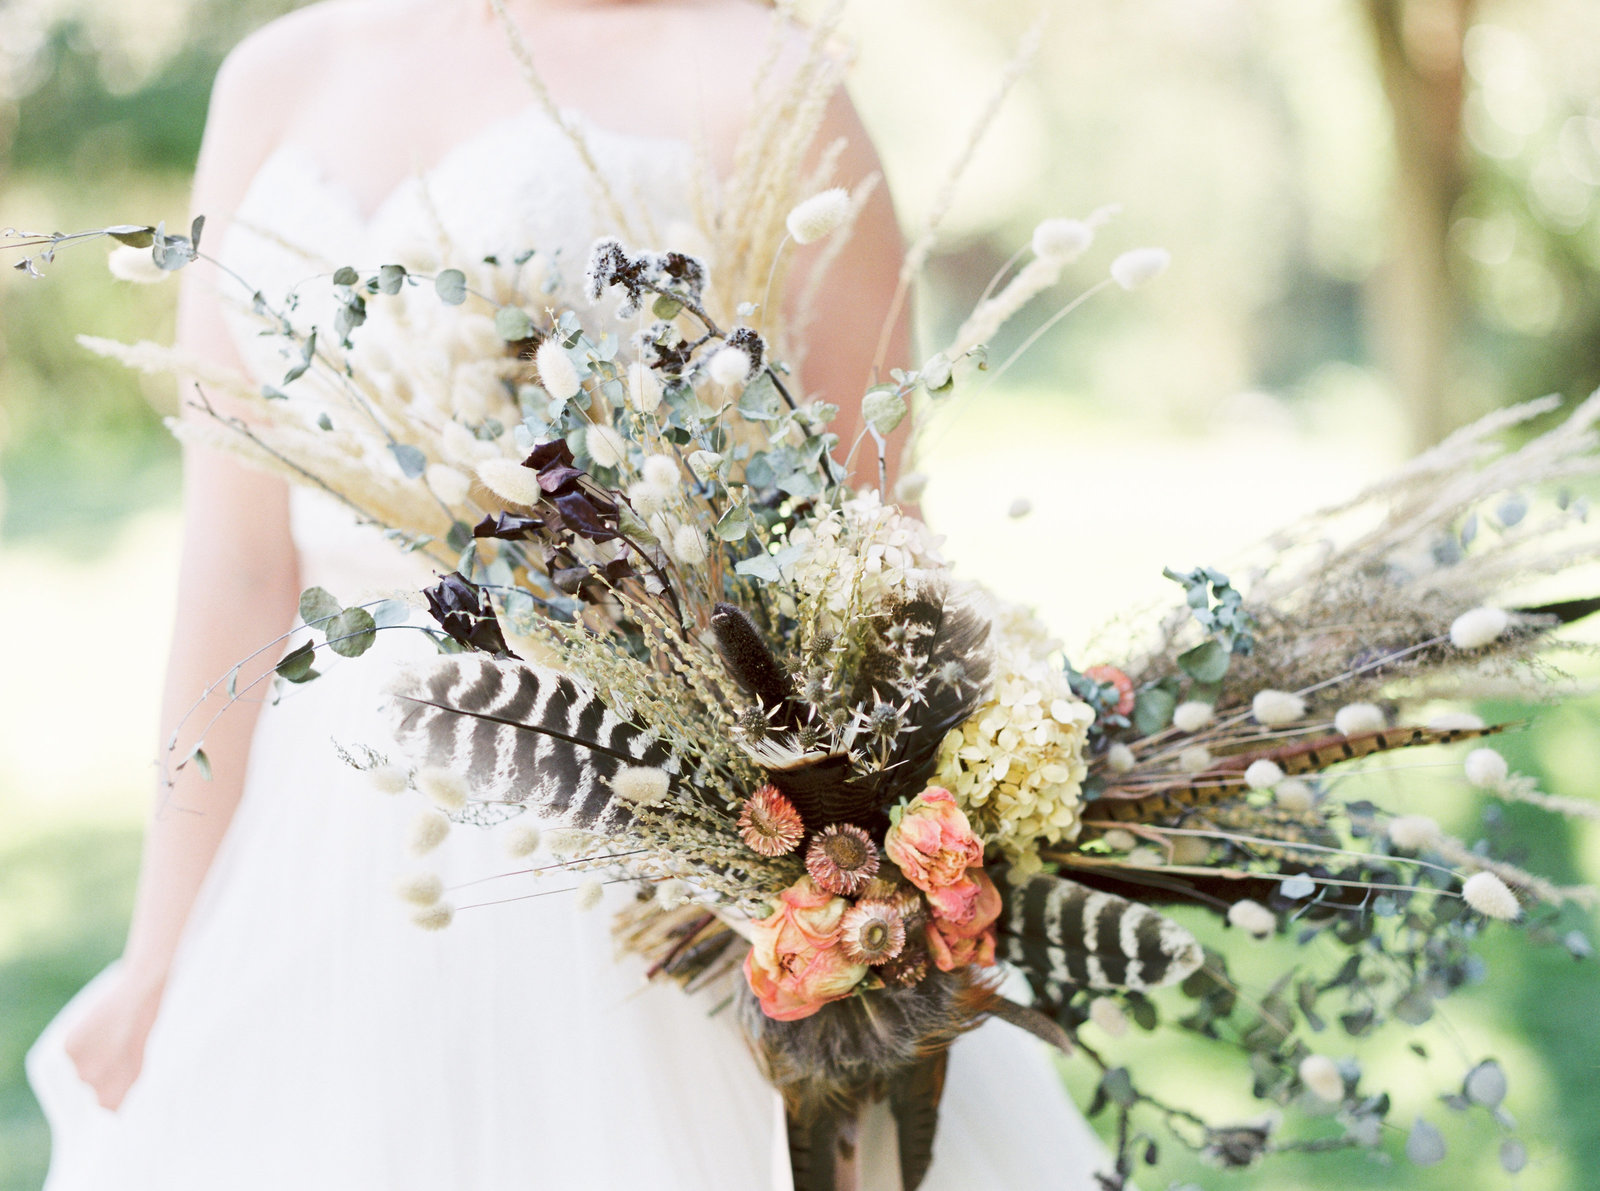 dried flower wedding bouquet with feathers